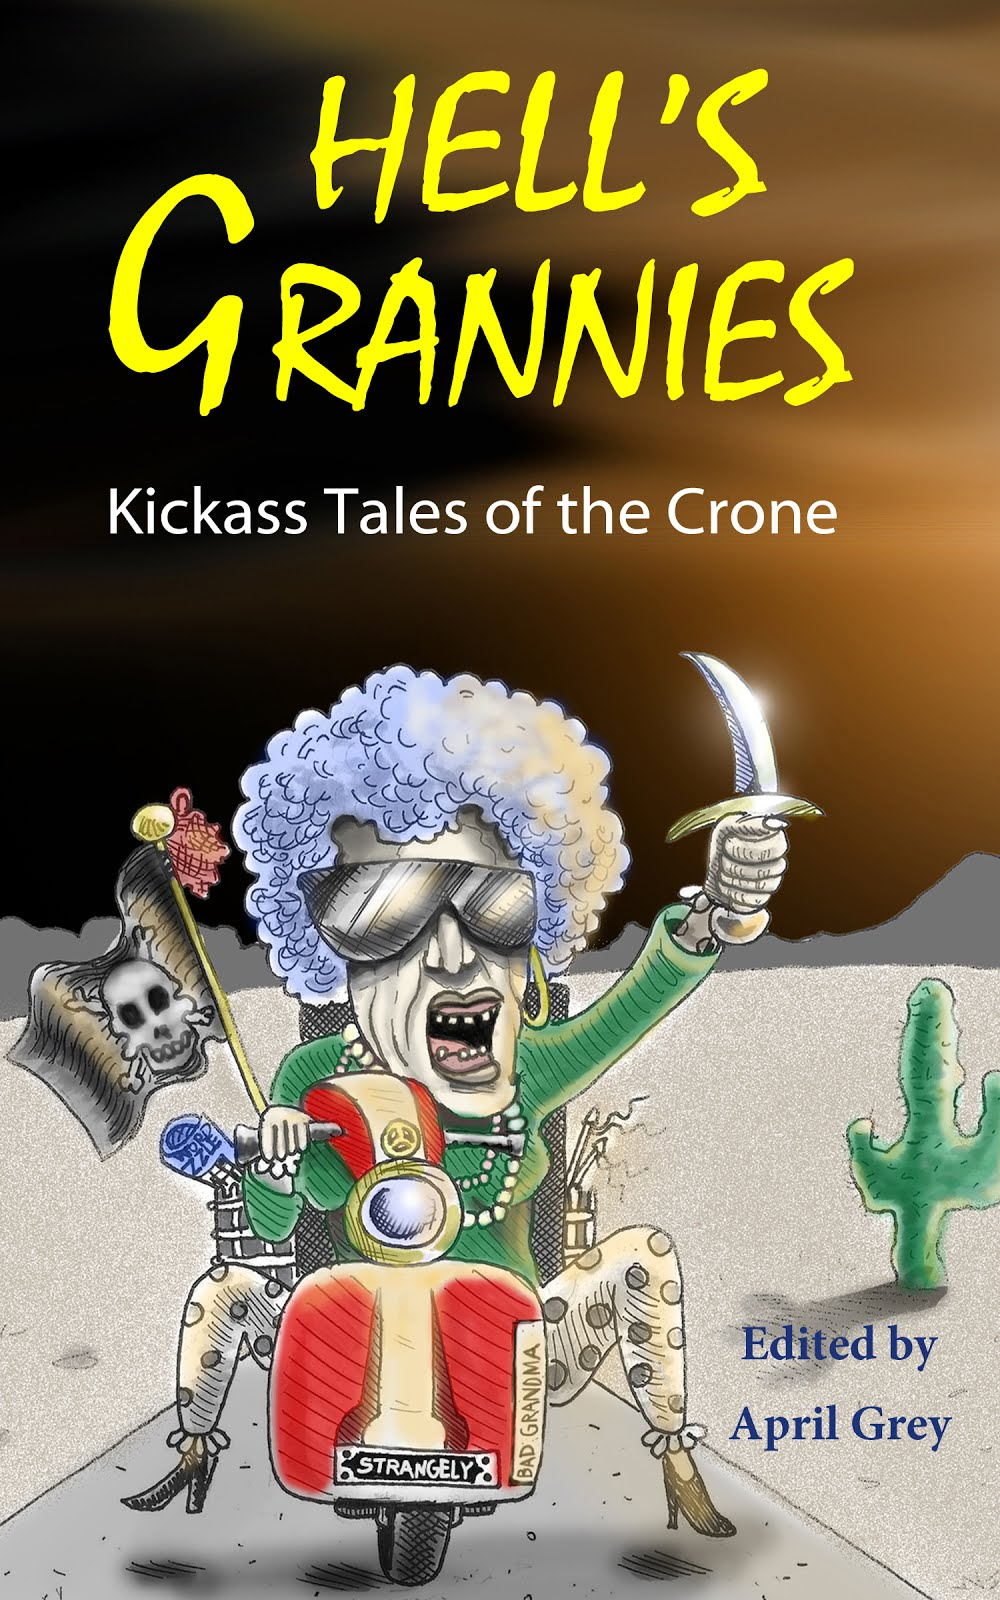 Hell's Grannies: Kickass Tales of the Crone